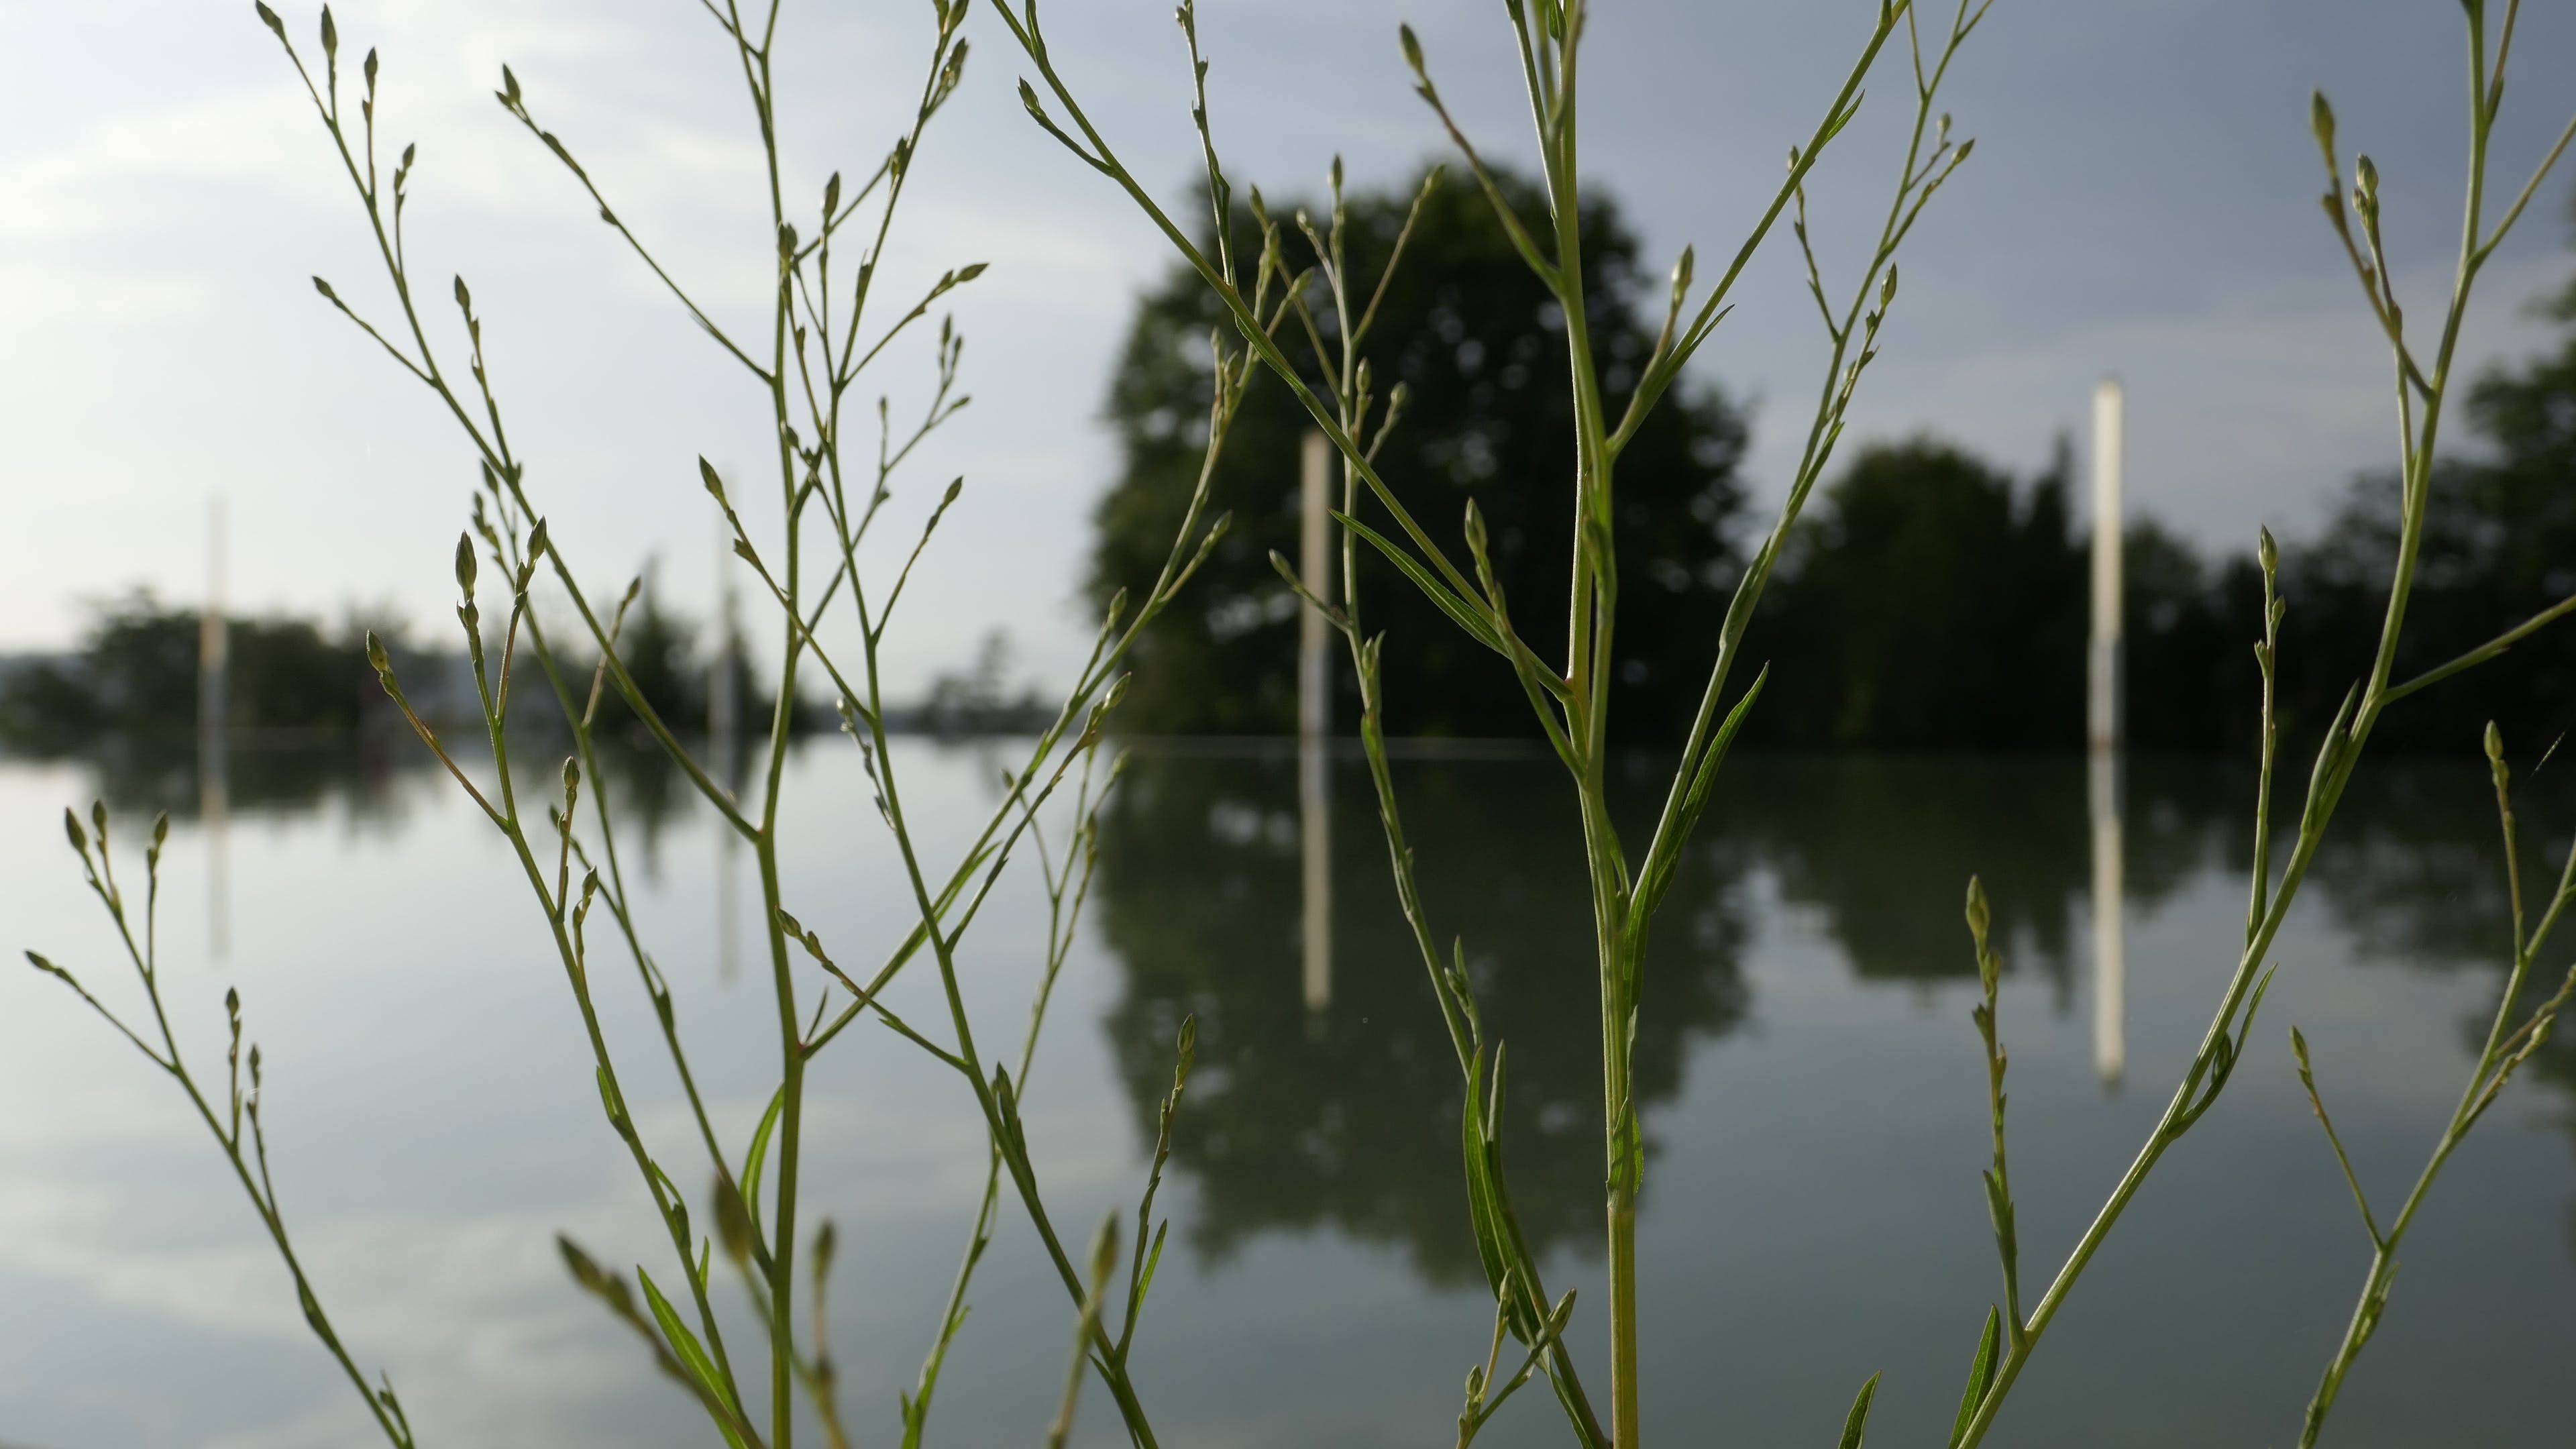 Free stock photo of aquatic plant, green plant and water, minimalist